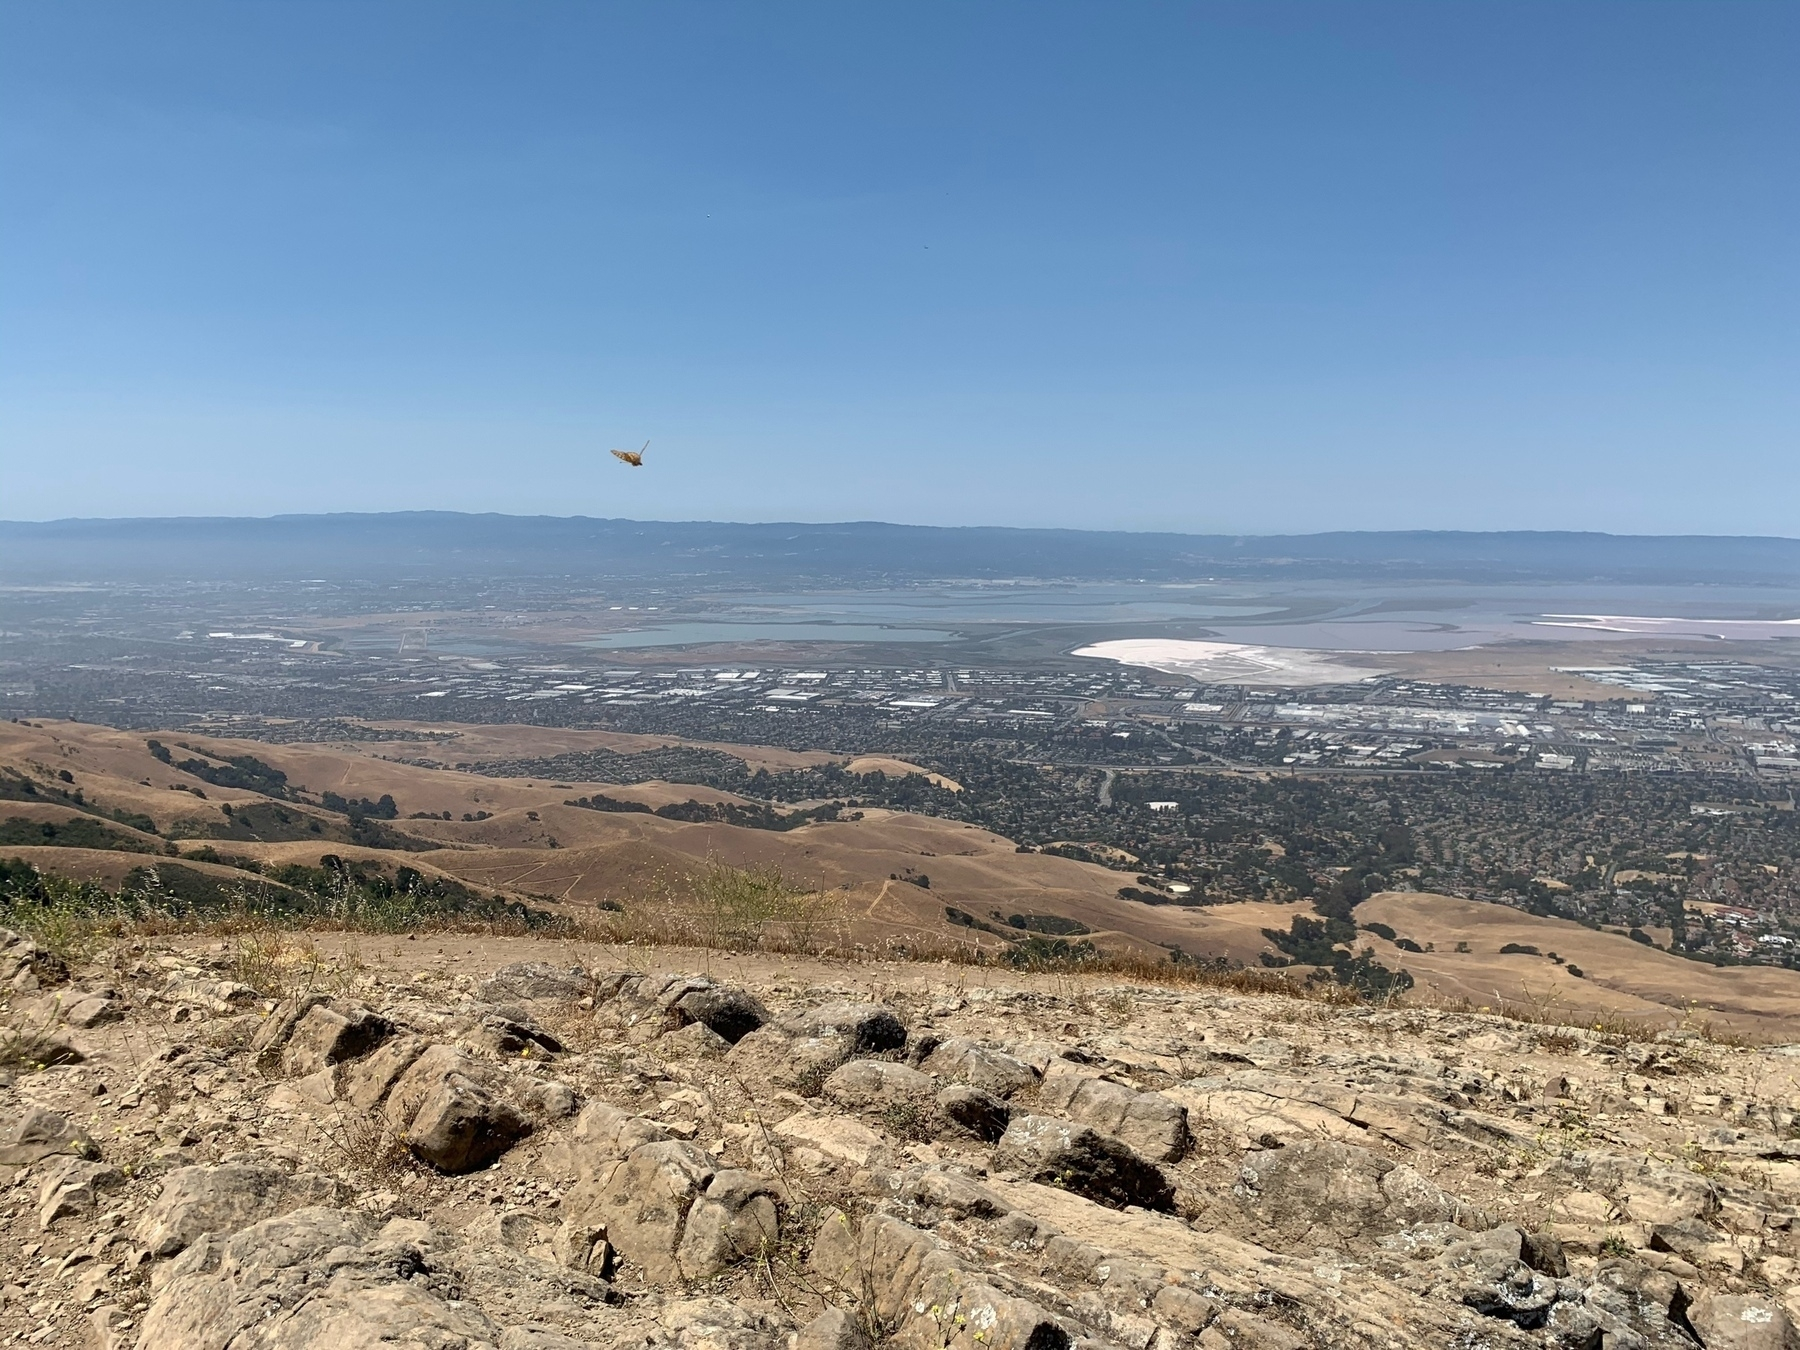 view looking west from the top of Mission Peak towards the San Franscisco Bay